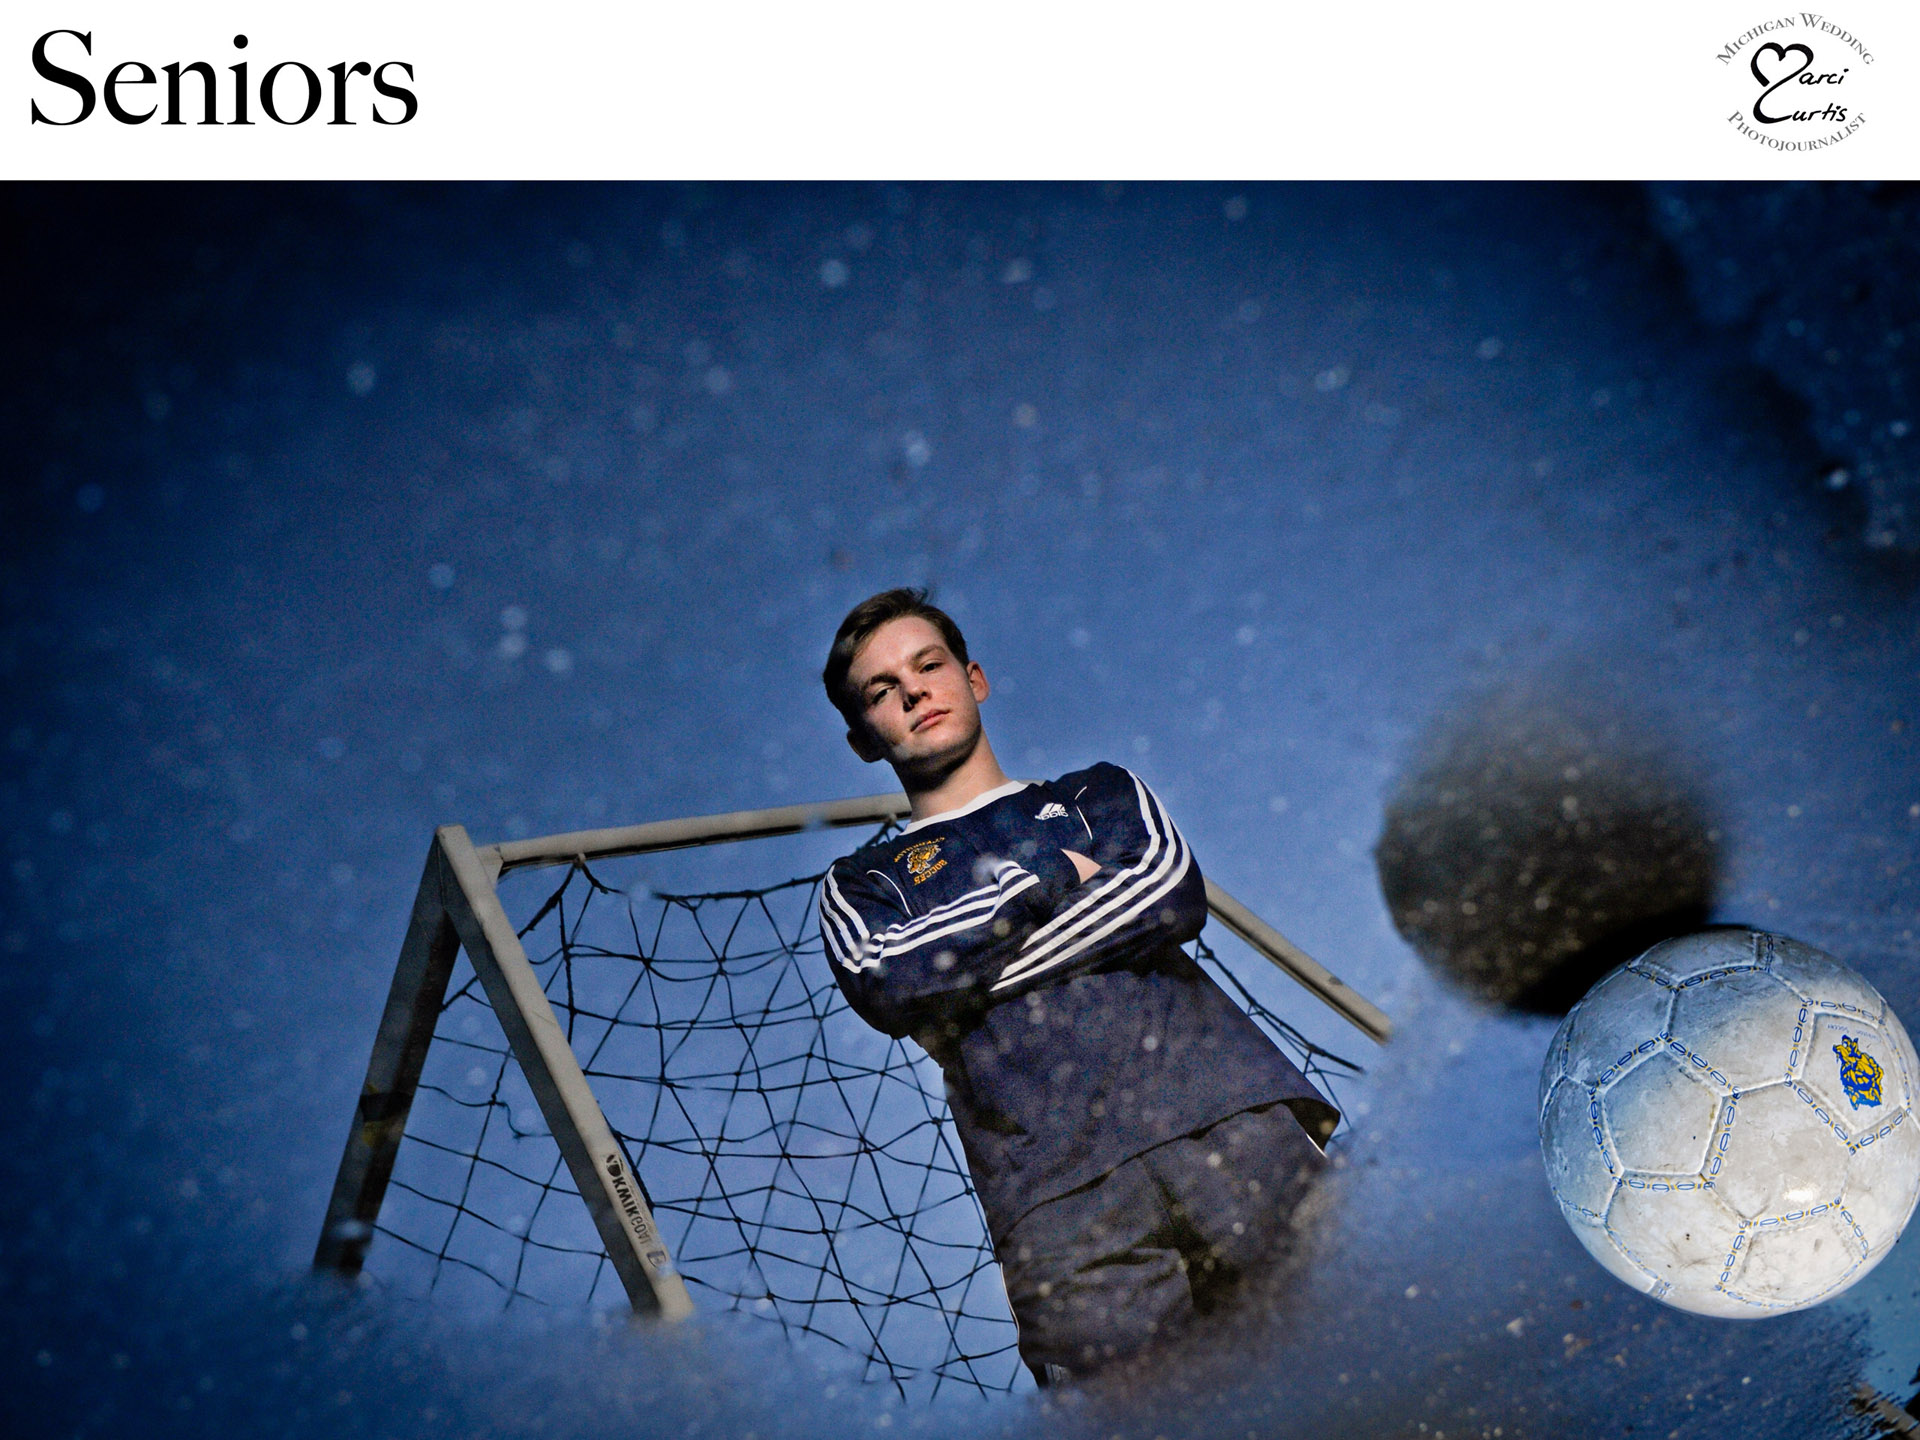 A Clarkston Michigan high school soccer playing senior is reflected in a puddle for this one of a kind senior photo featuring Marci Curtis's best Metro Detroit senior photos.